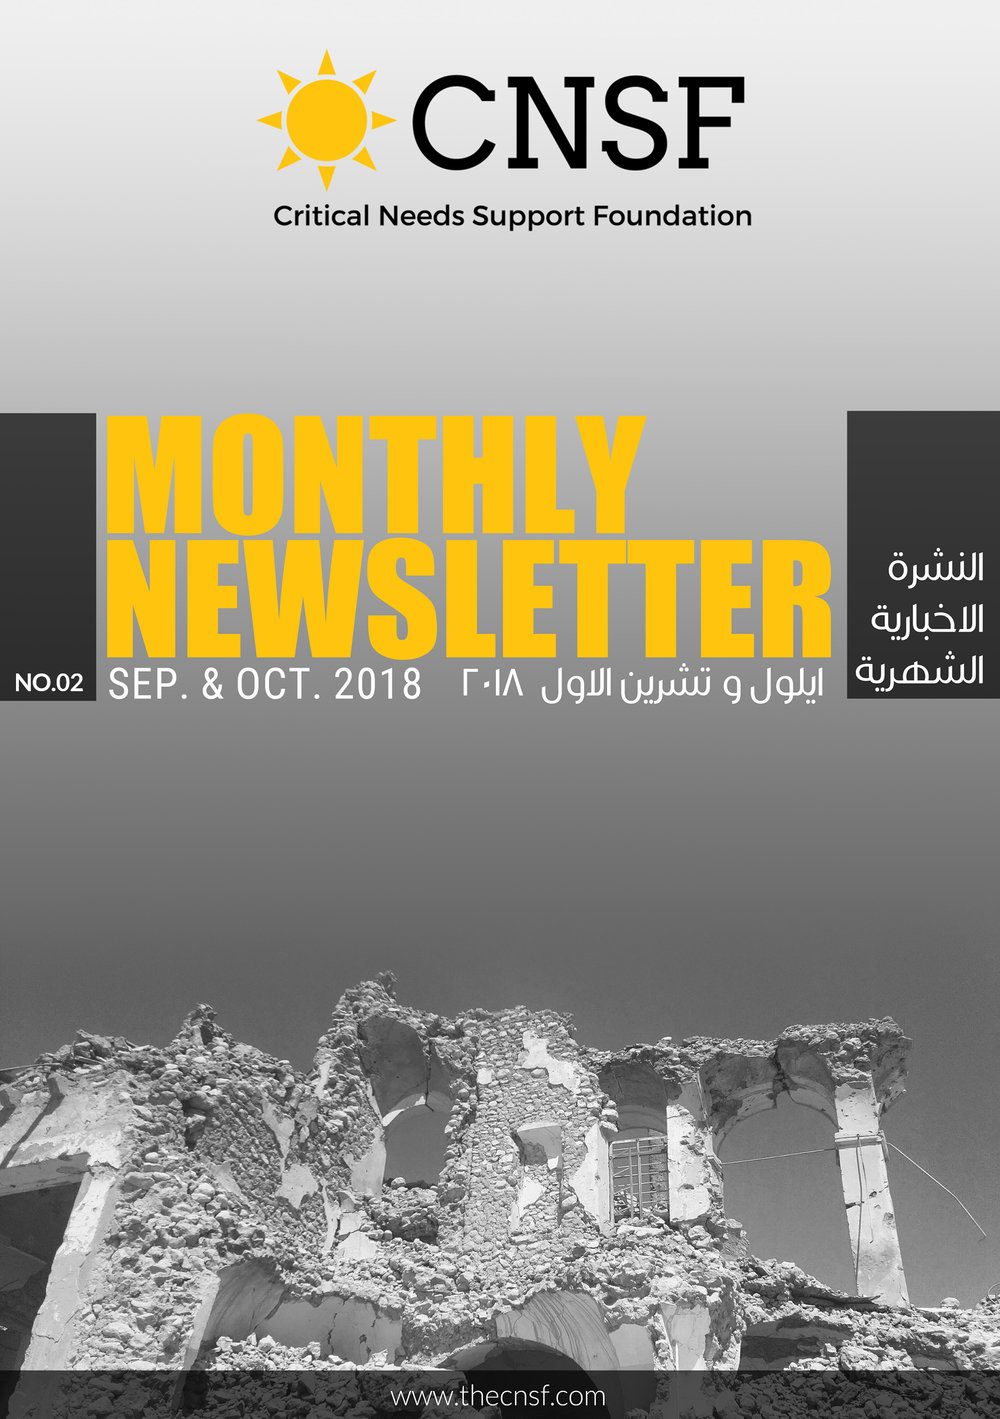 monthly newsletter CNSF No01.jpg